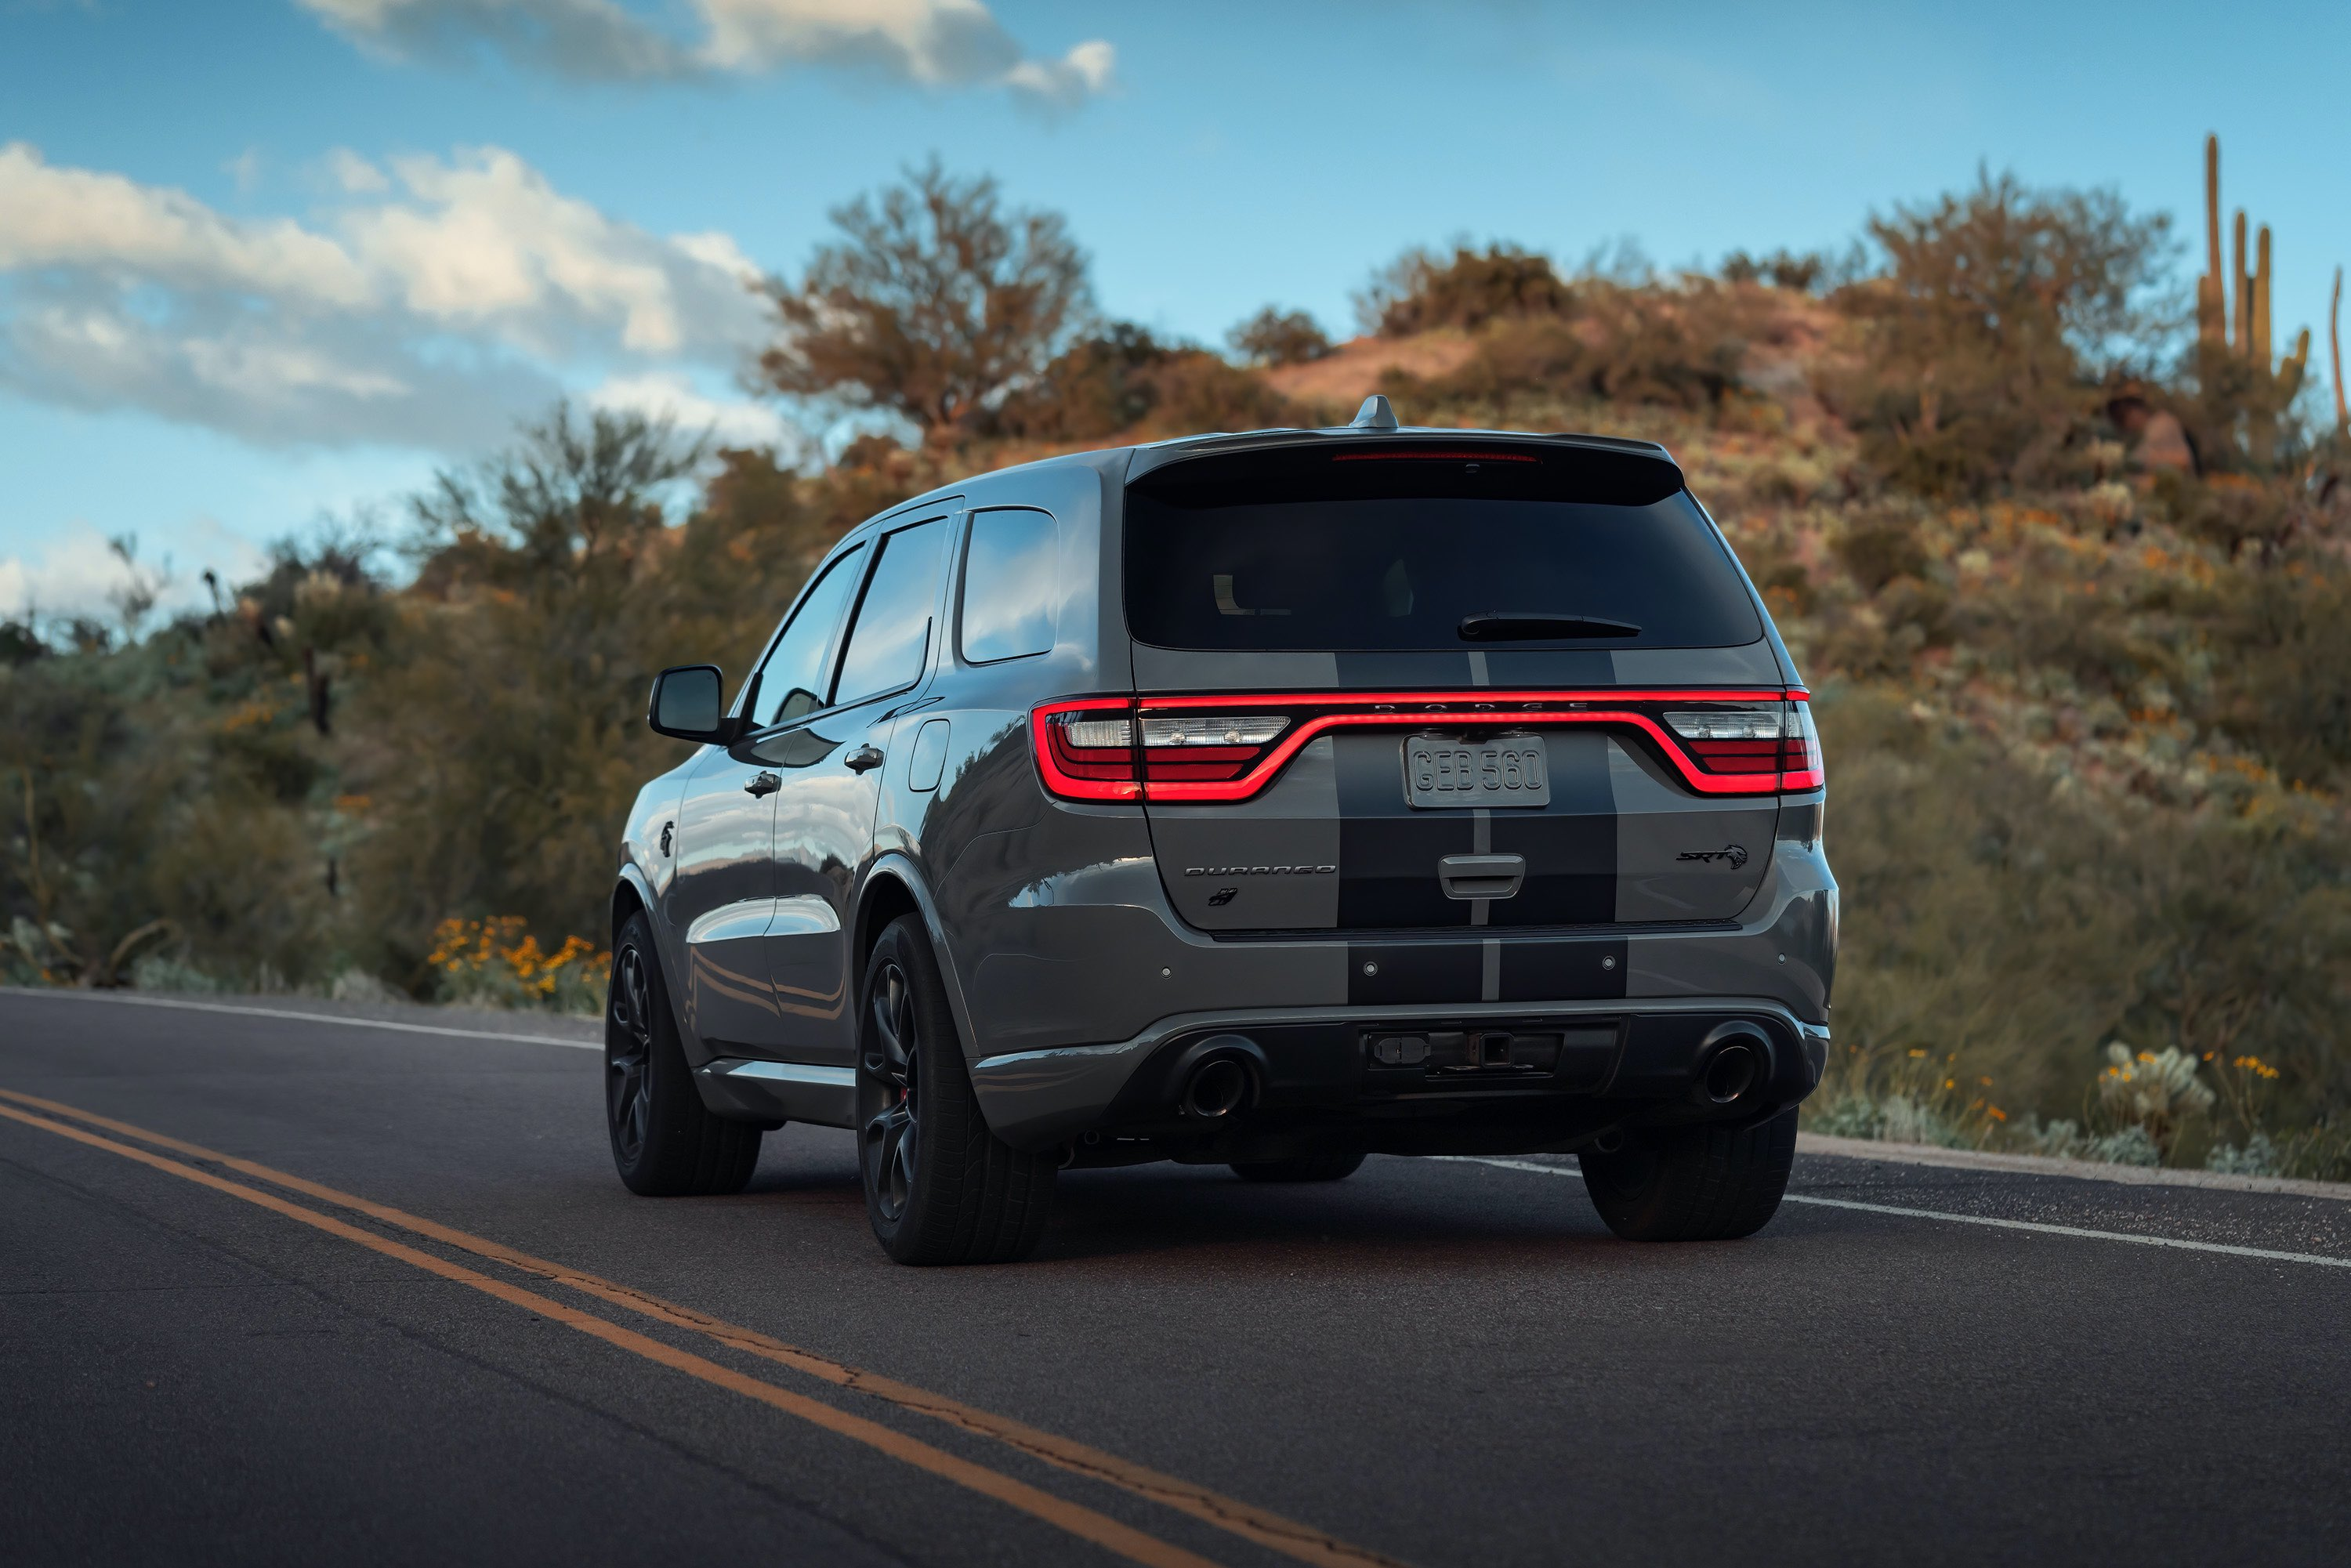 Dodge Durango Srt Hellcat Most Powerful Production Suv Ever Coming In 2021 Gearjunkie